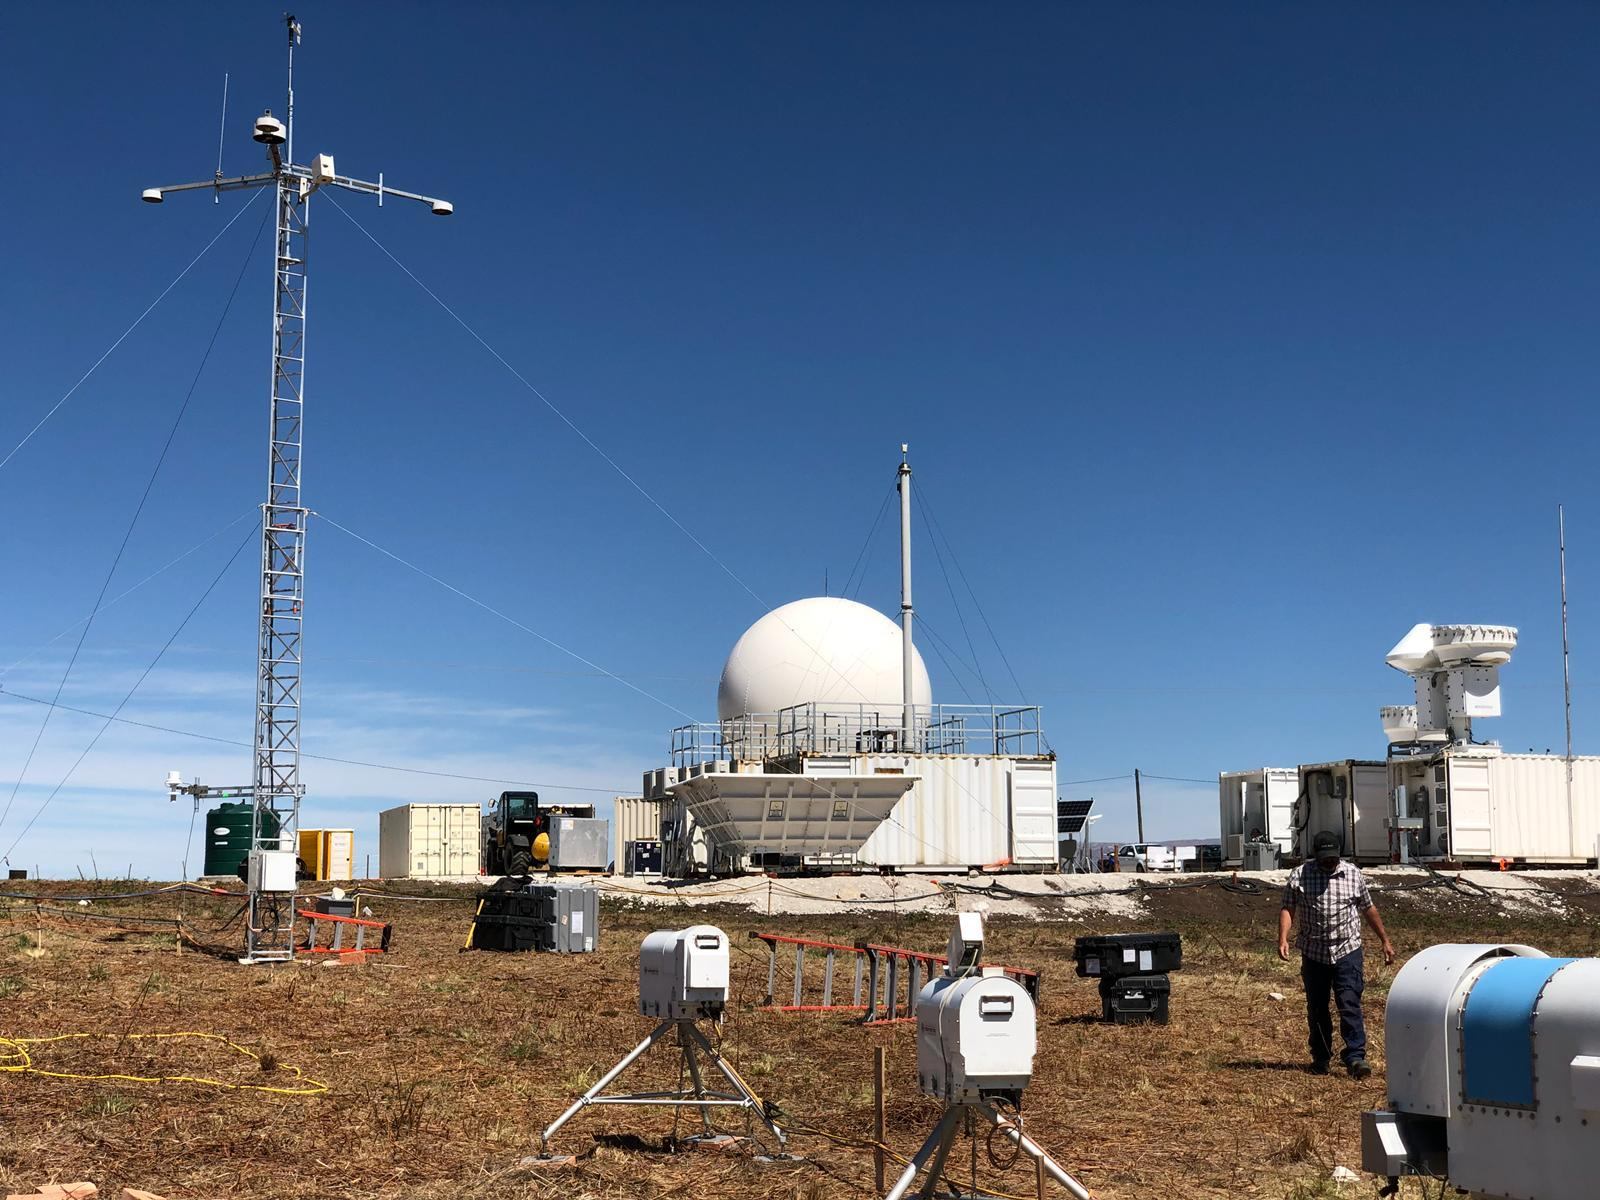 weather monitoring equipment at a remote site